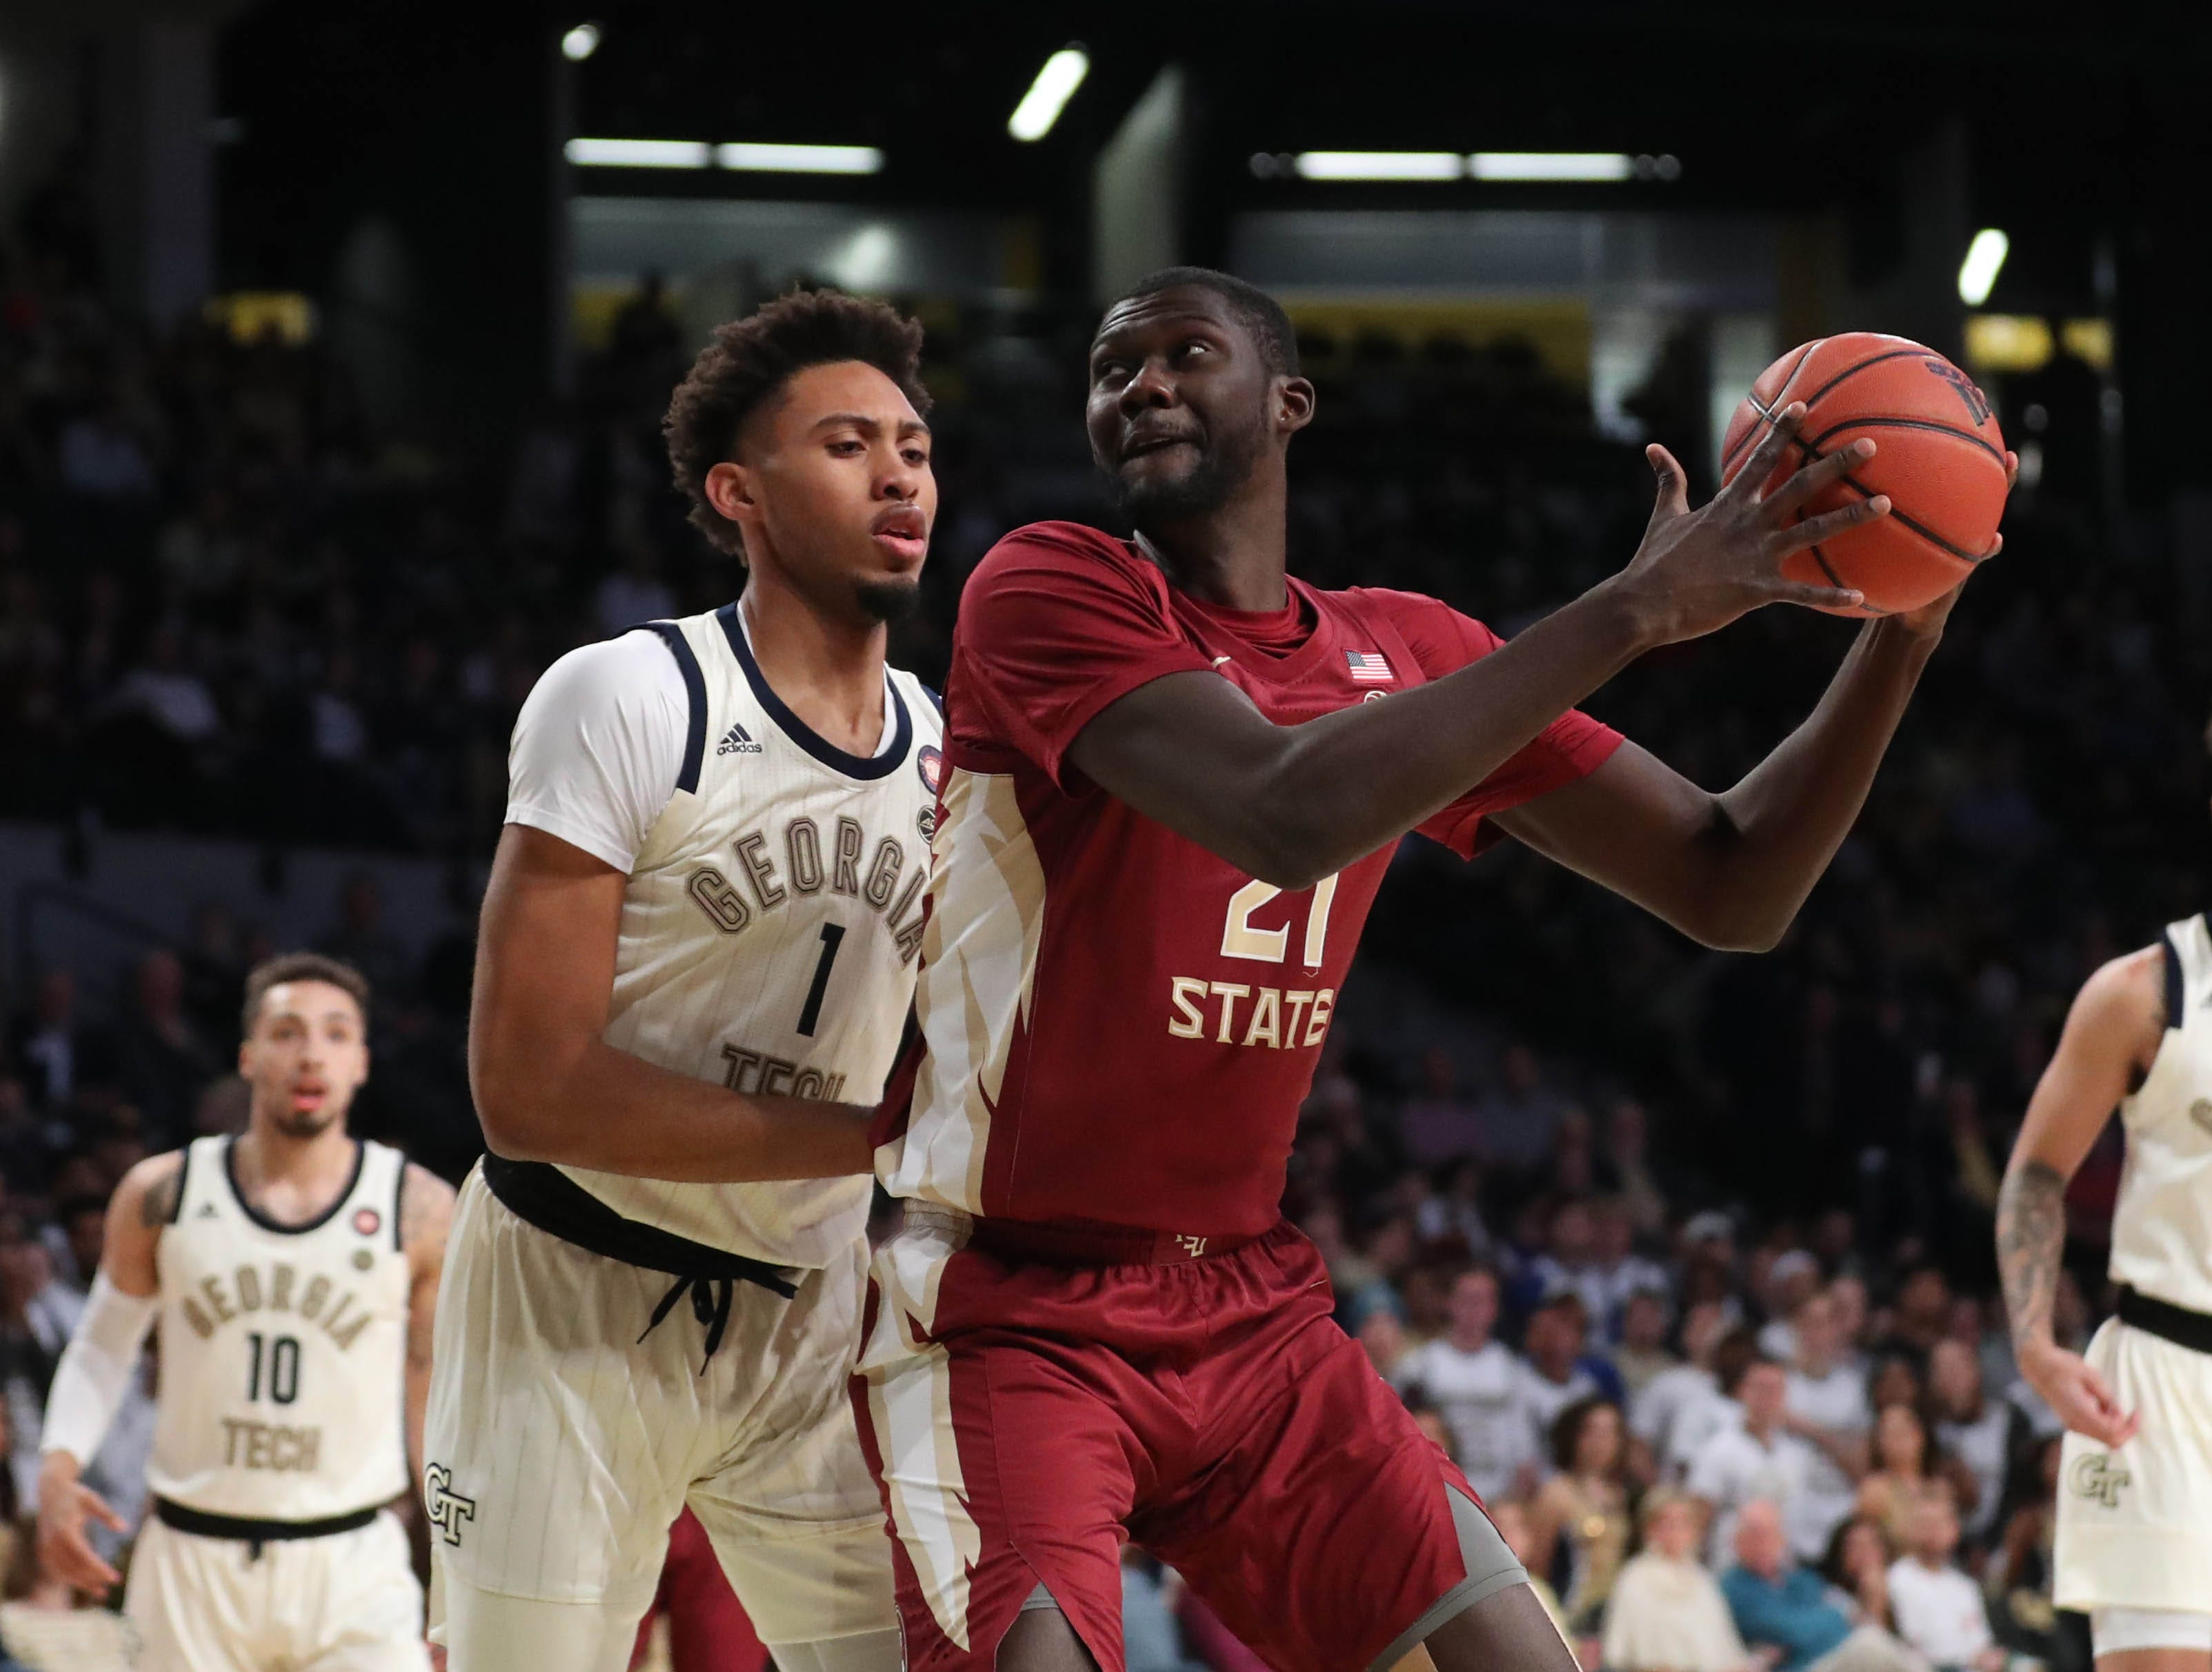 Feb 16, 2019; Atlanta, GA, USA; Florida State Seminoles center Christ Koumadje (21) makes a move against Georgia Tech Yellow Jackets forward James Banks III (1) in the first half at McCamish Pavilion. Mandatory Credit: Jason Getz-USA TODAY Sports